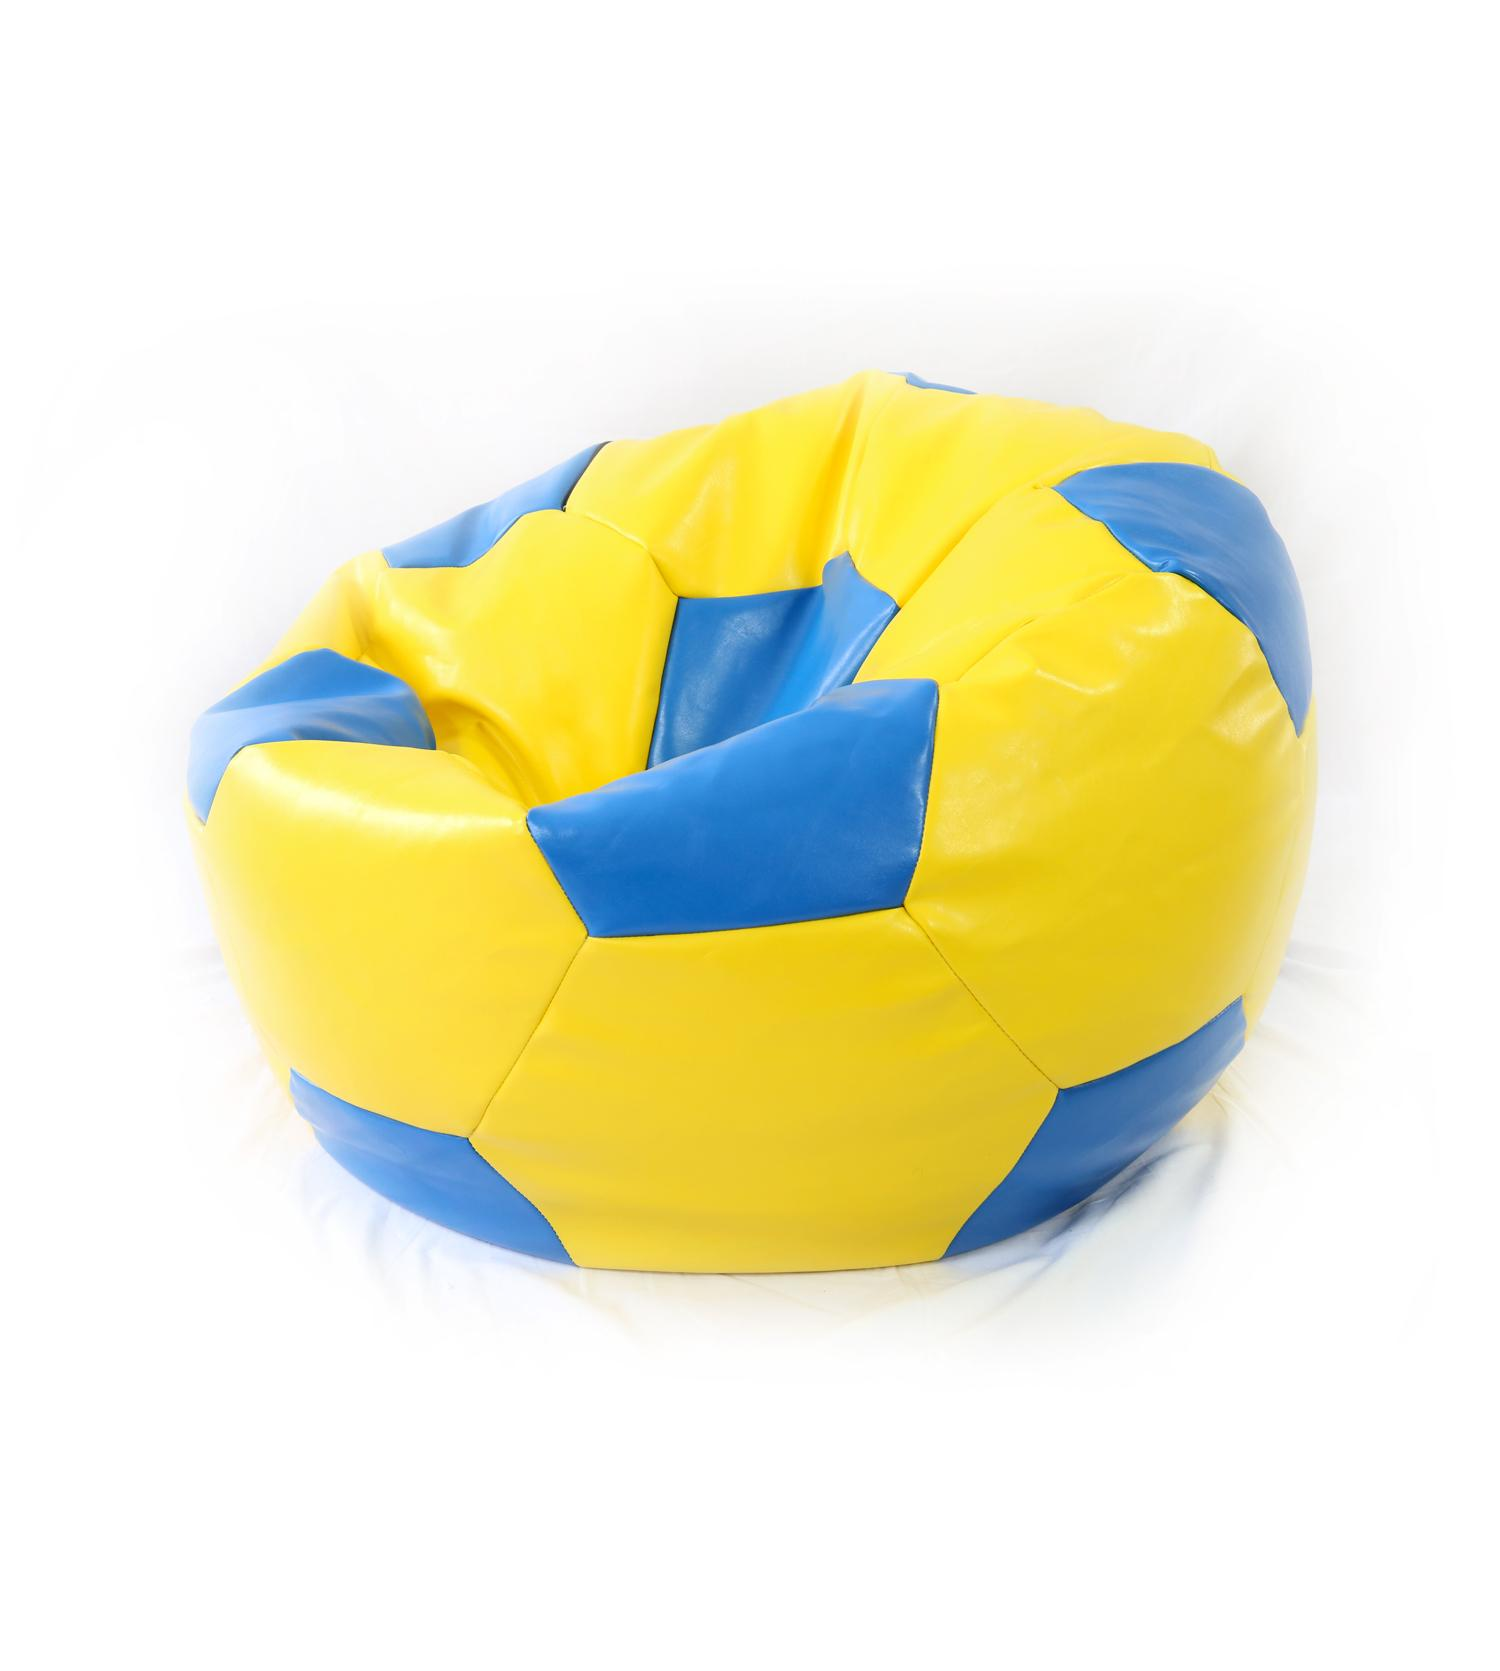 Ball Bean Bag Because Products Made In Moldova